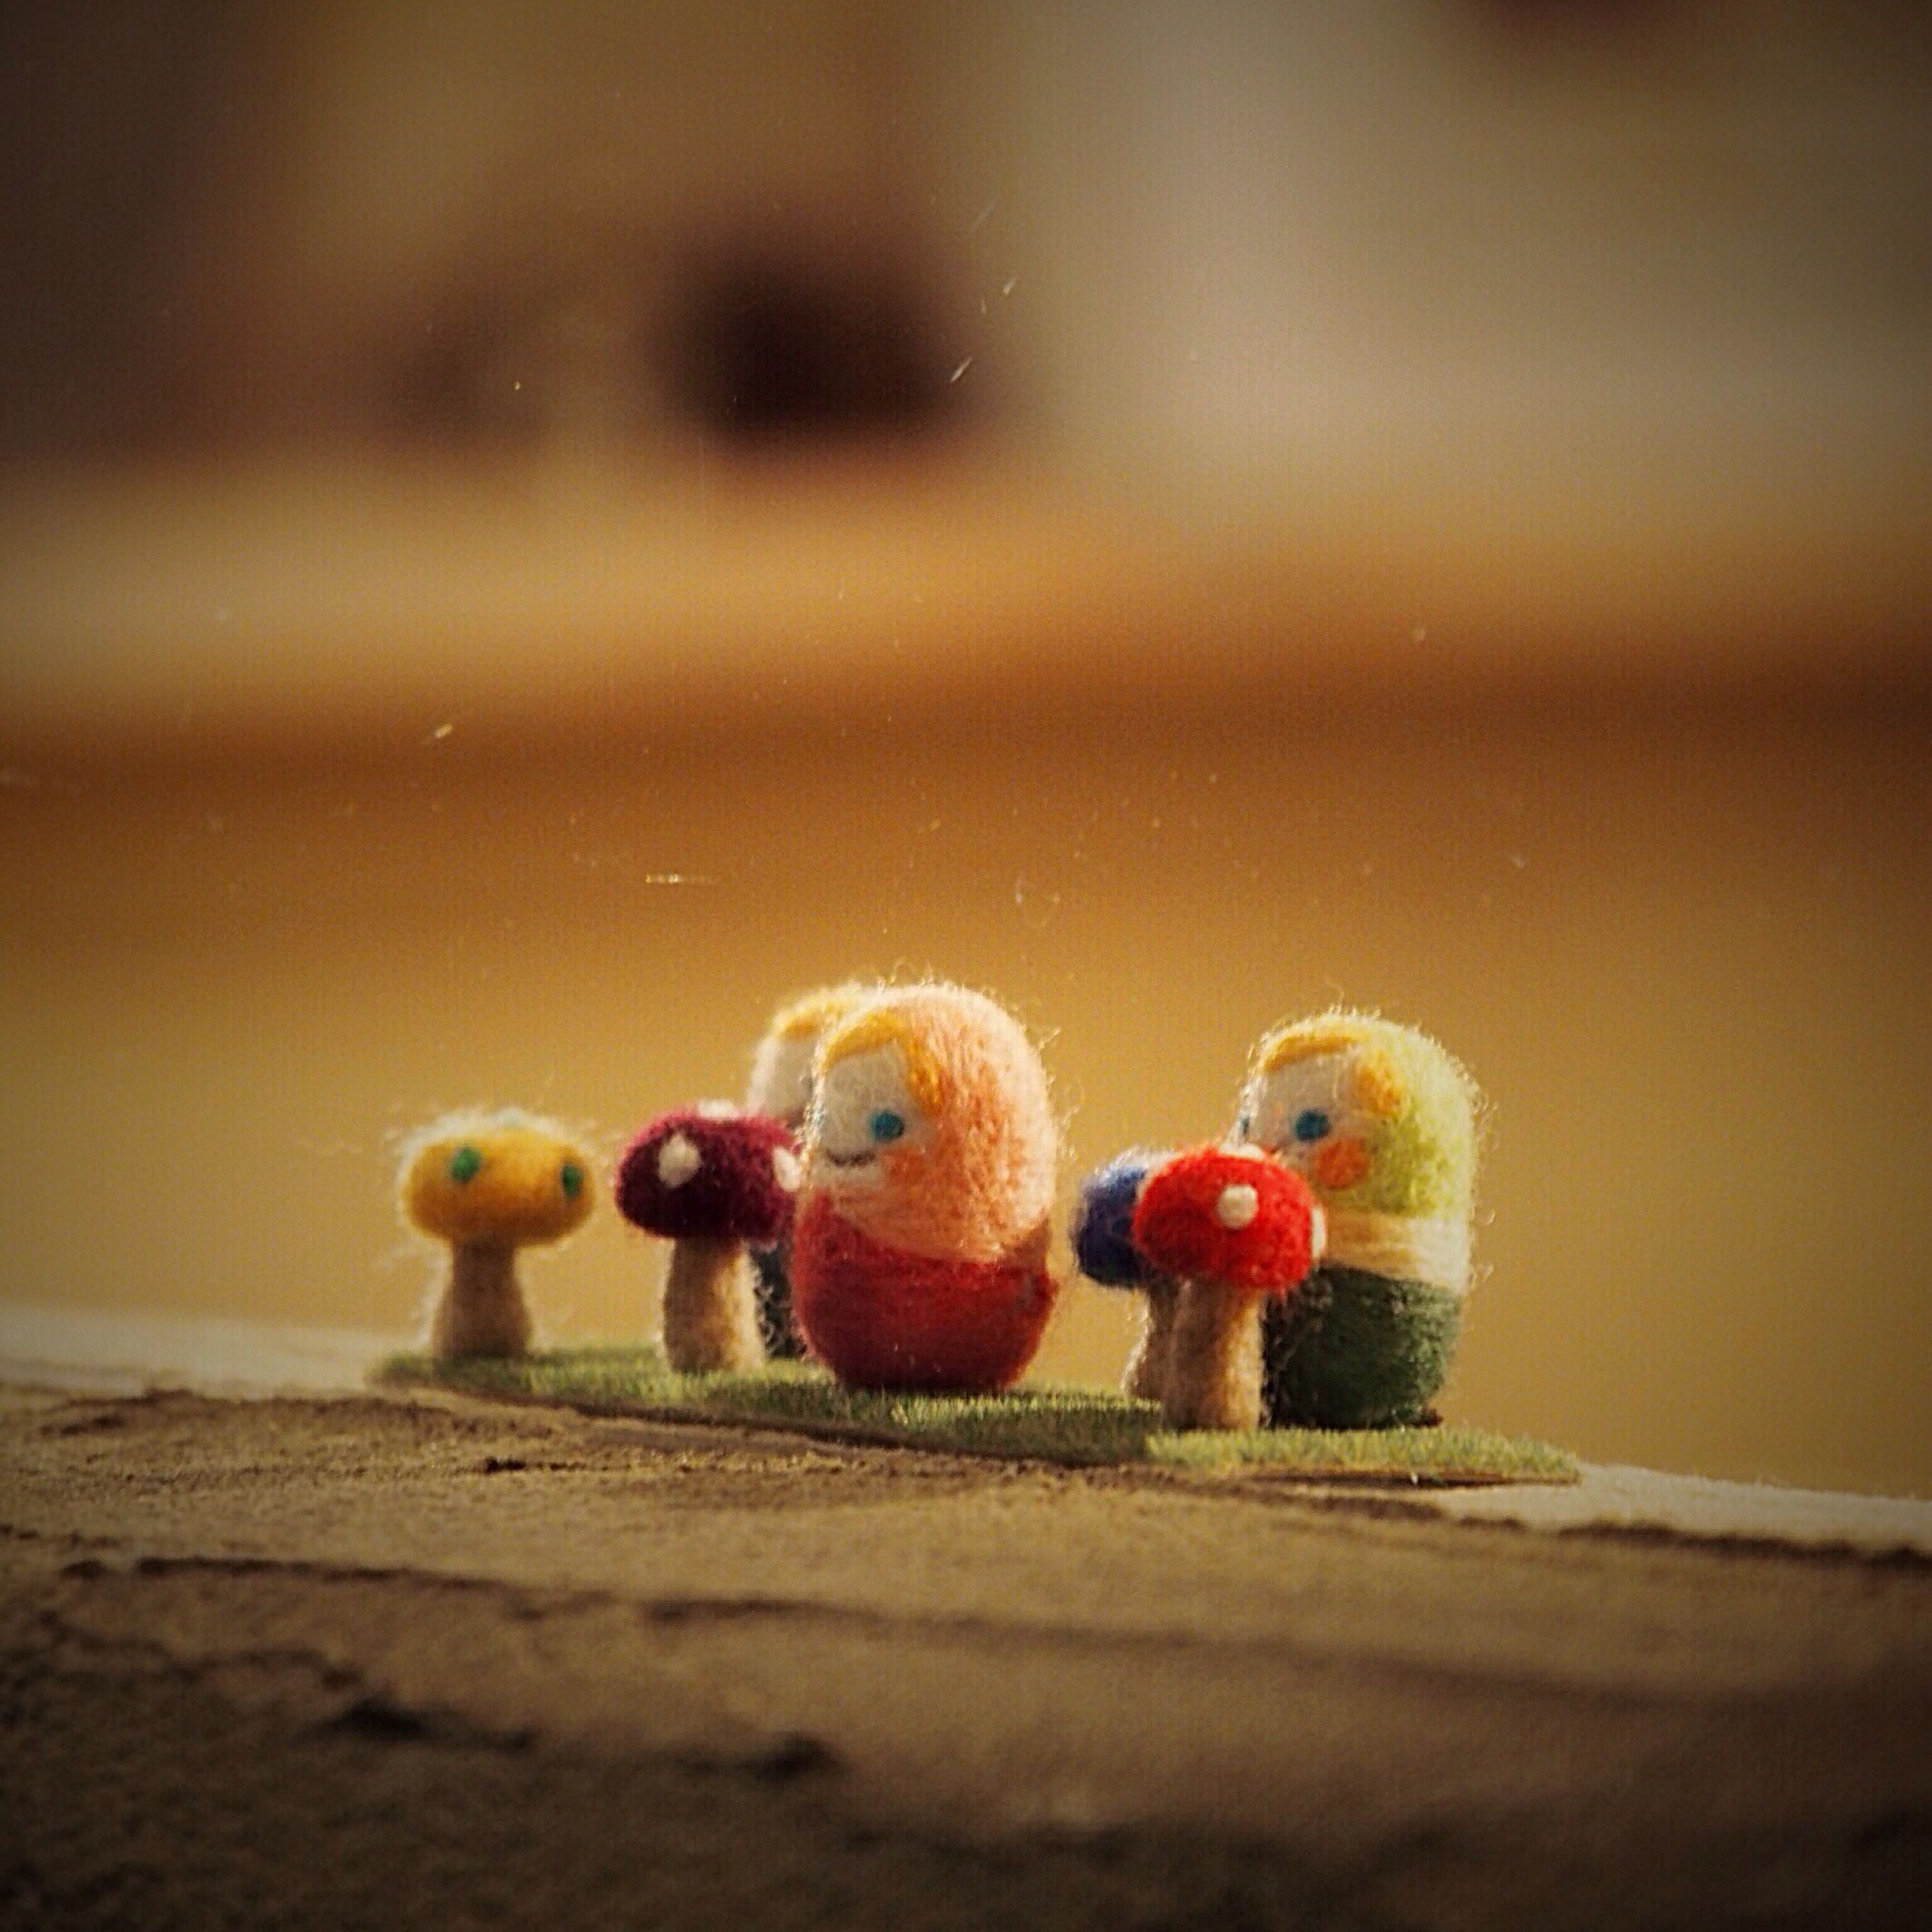 toy, childhood, selective focus, focus on foreground, animal themes, multi colored, close-up, animal representation, bird, day, outdoors, no people, two animals, full length, red, still life, nature, playful, wall - building feature